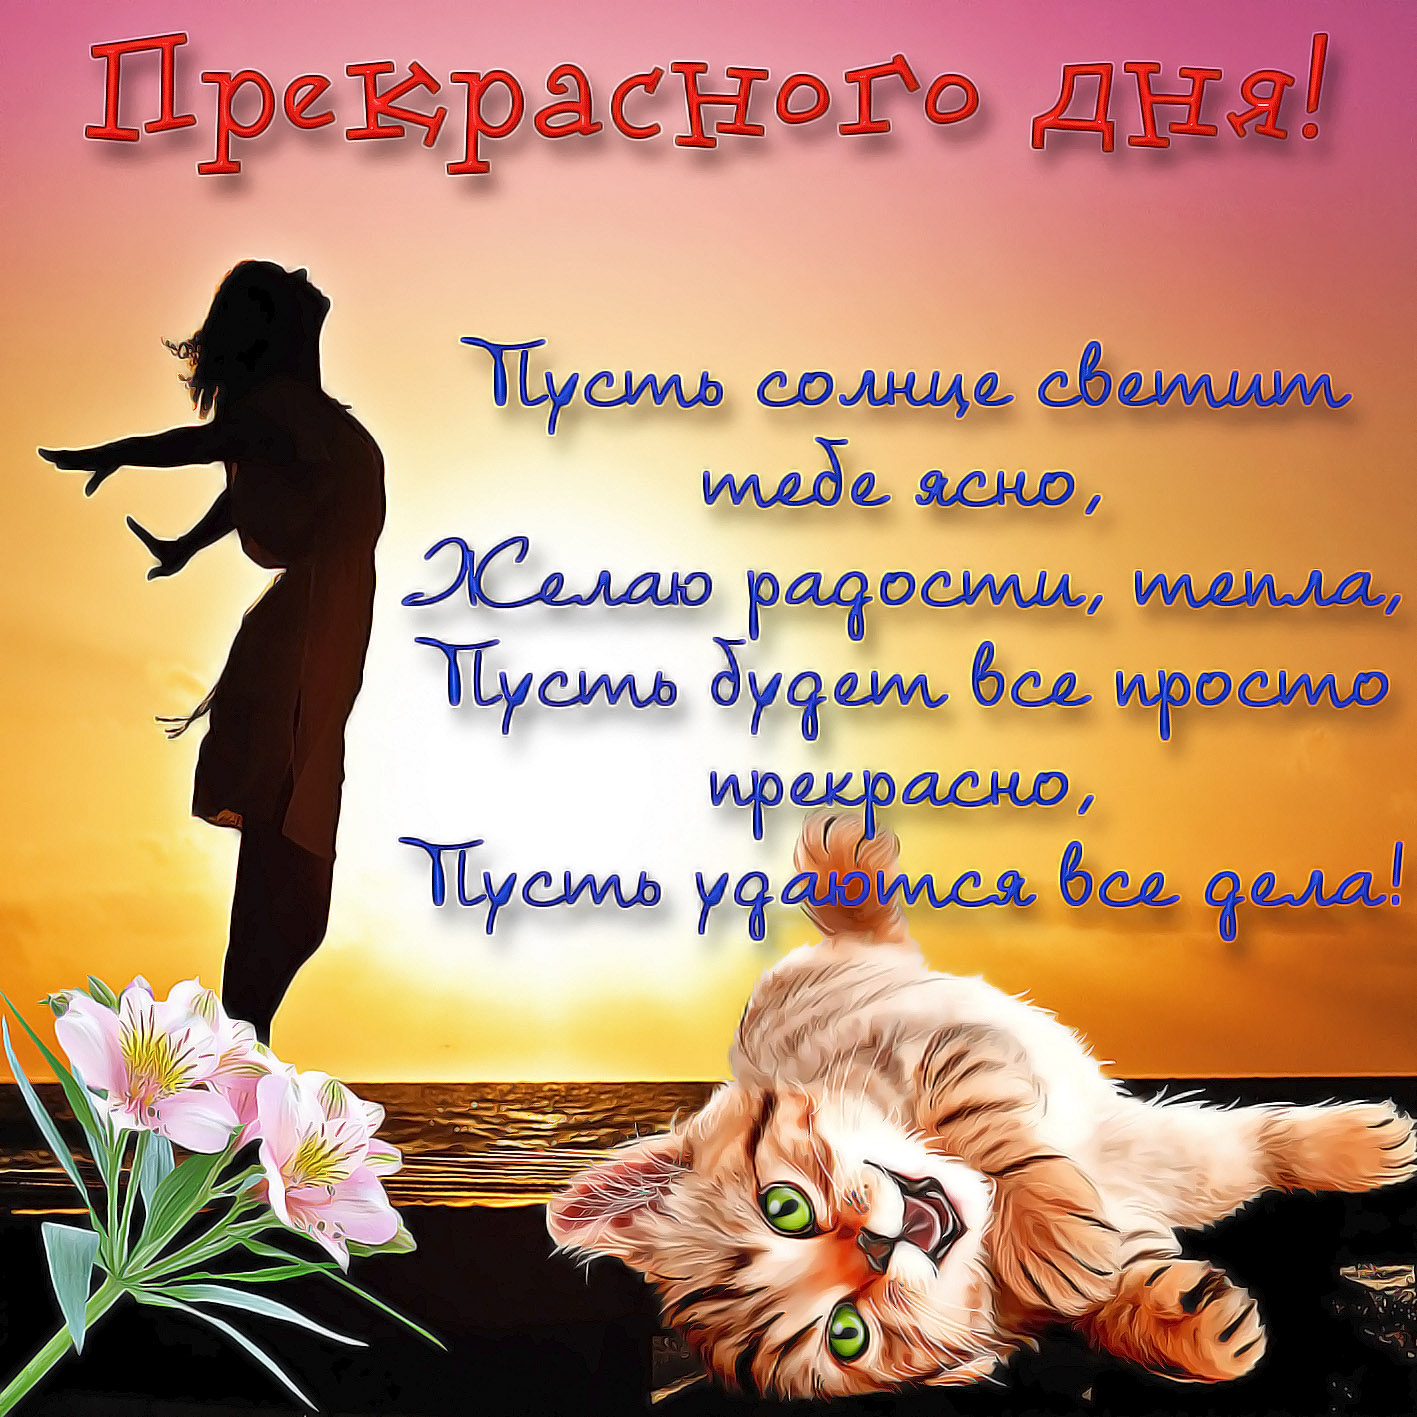 https://bonnycards.ru/images/horoshego-dnya/horoshego-dnya0029.jpg